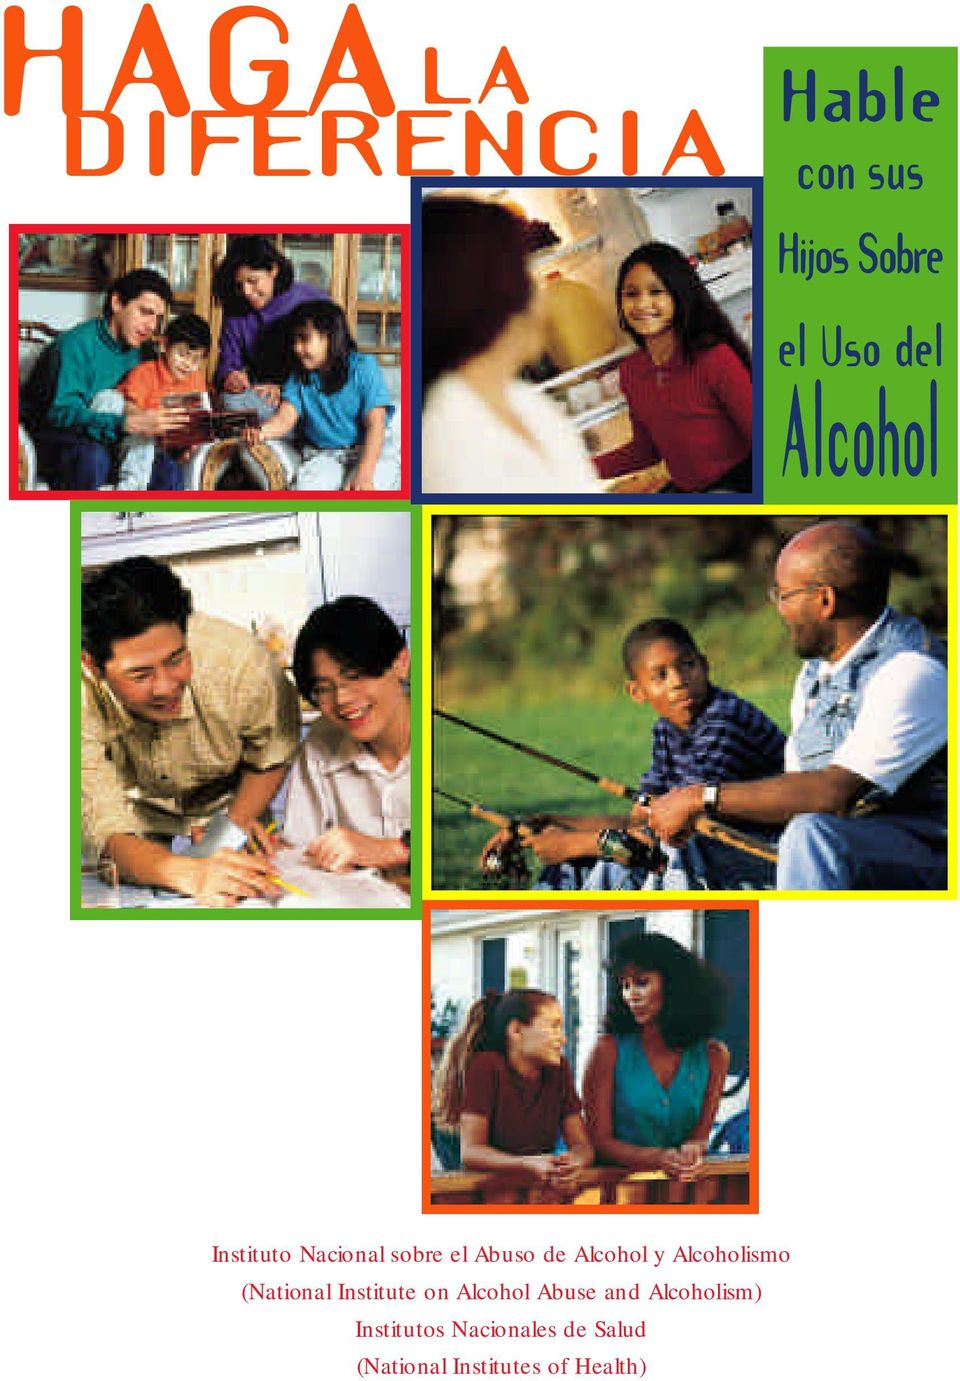 Alcoholismo (National Institute on Alcohol Abuse and